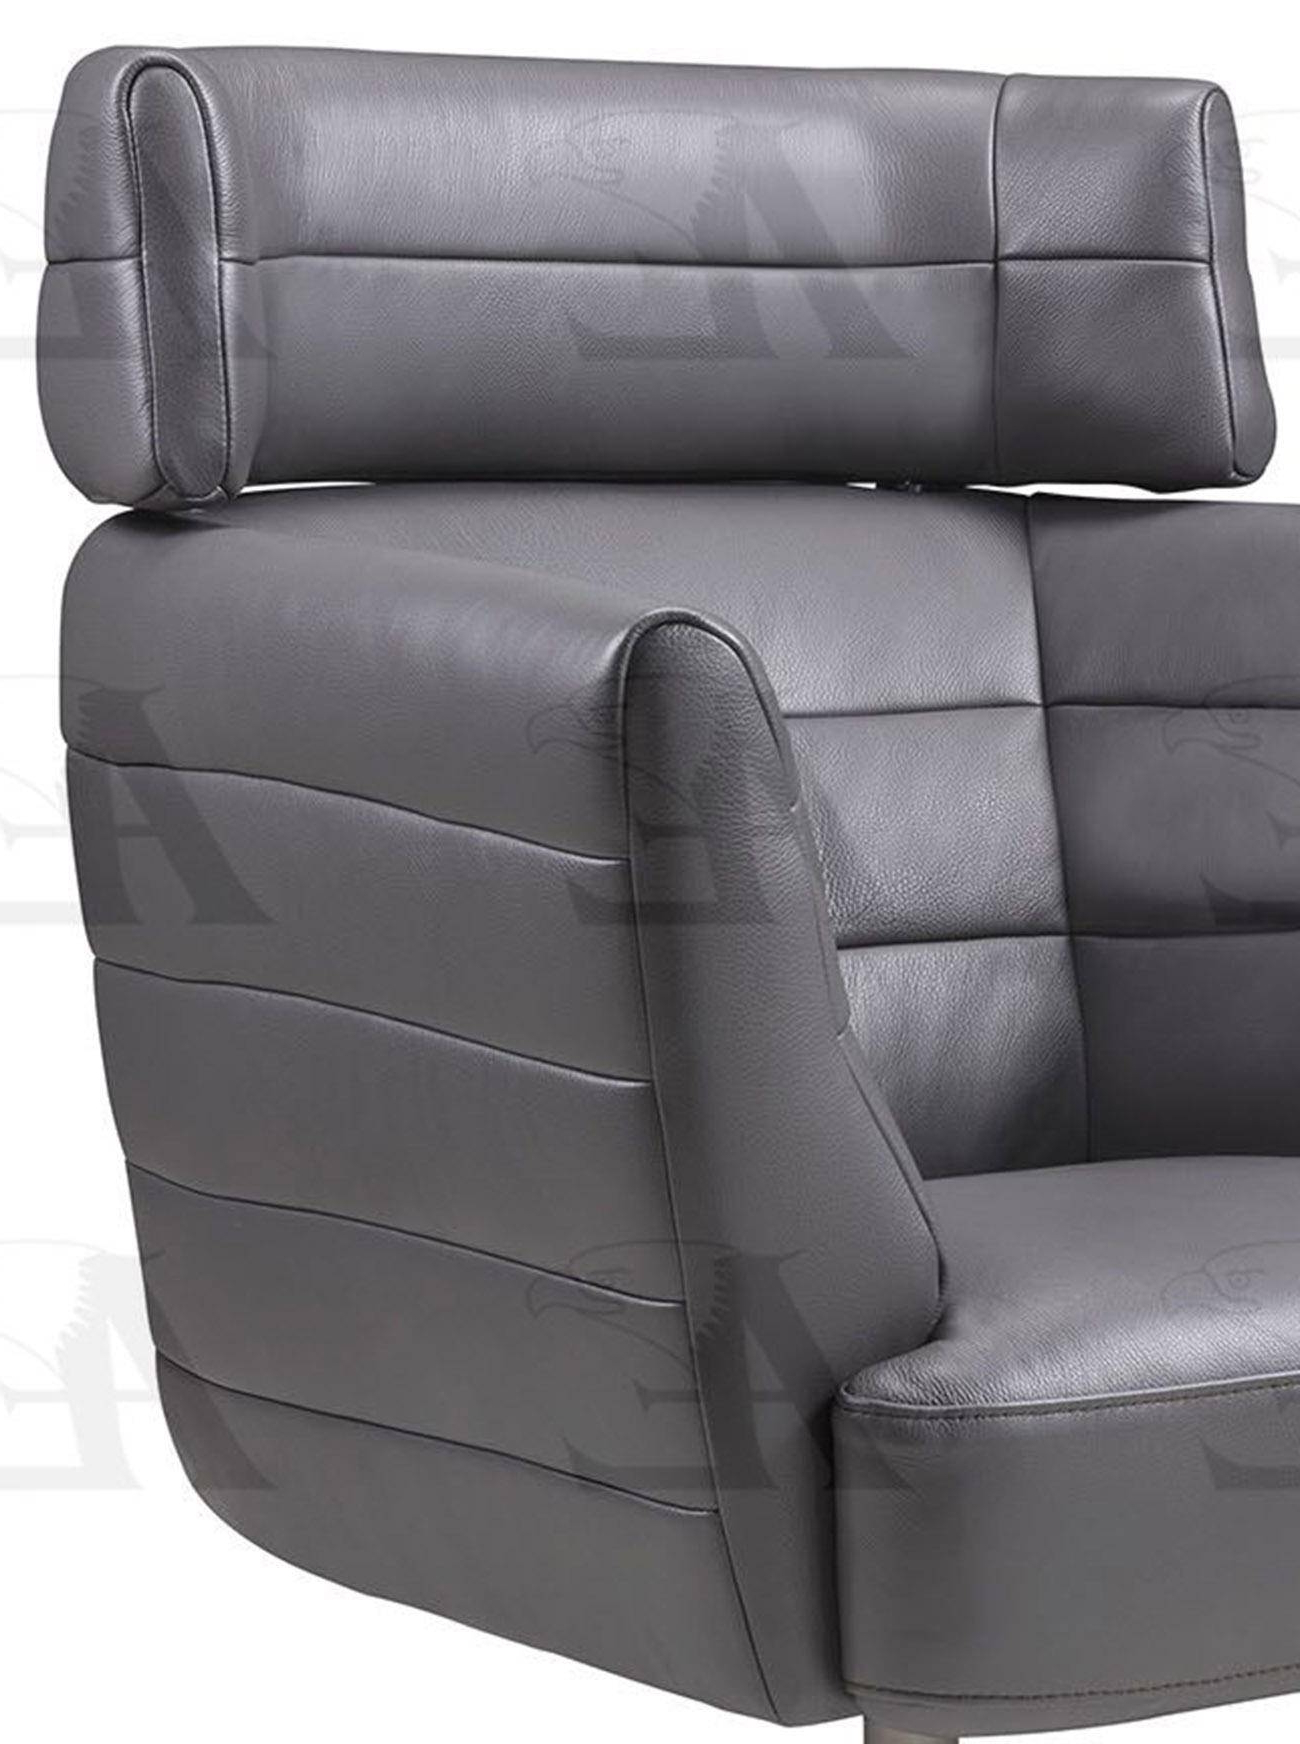 Most Recently Released American Eagle Furniture Ek Ch08a Gr Dark Gray Swivel Accent Chair In Dark Grey Swivel Chairs (View 12 of 20)